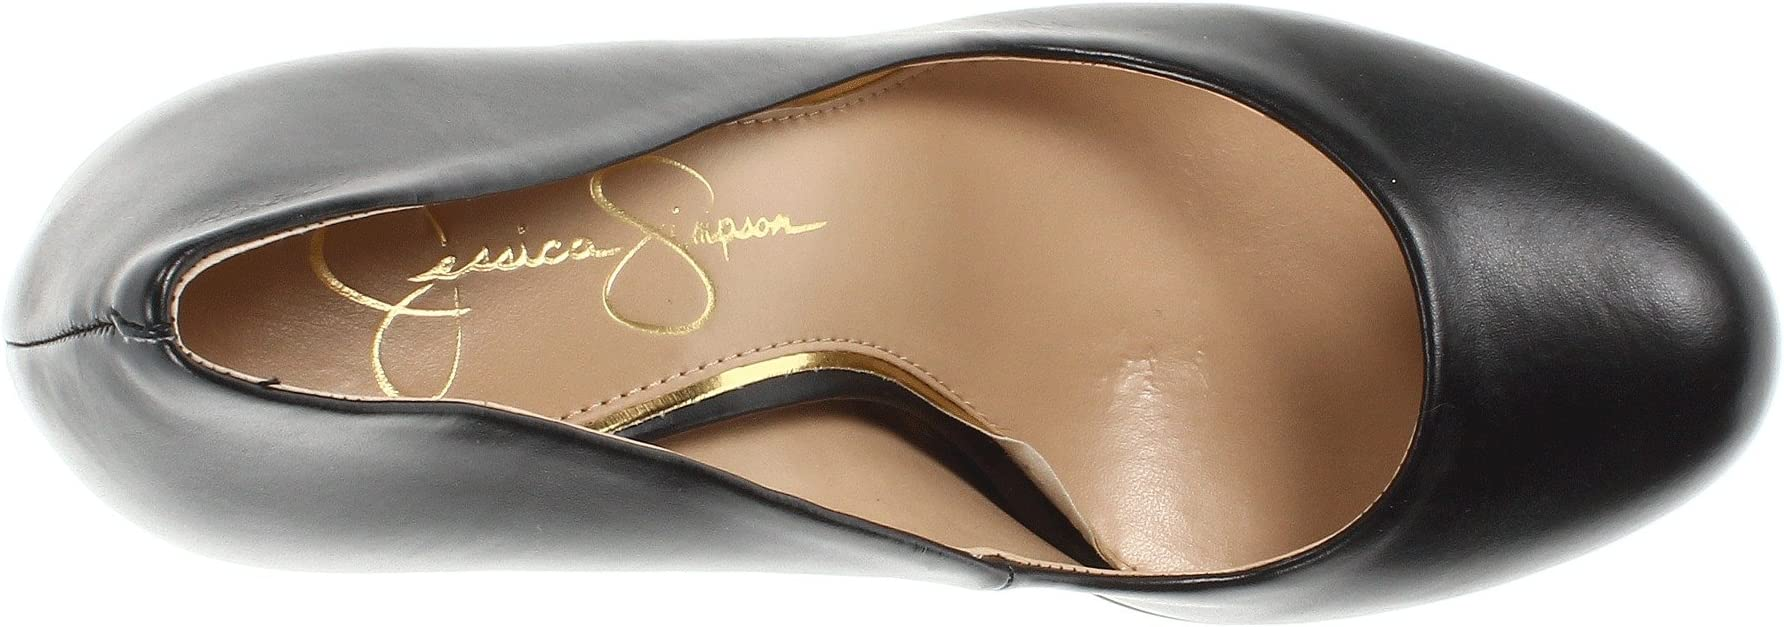 Jessica Simpson Baleenda | Women's shoes | 2020 Newest